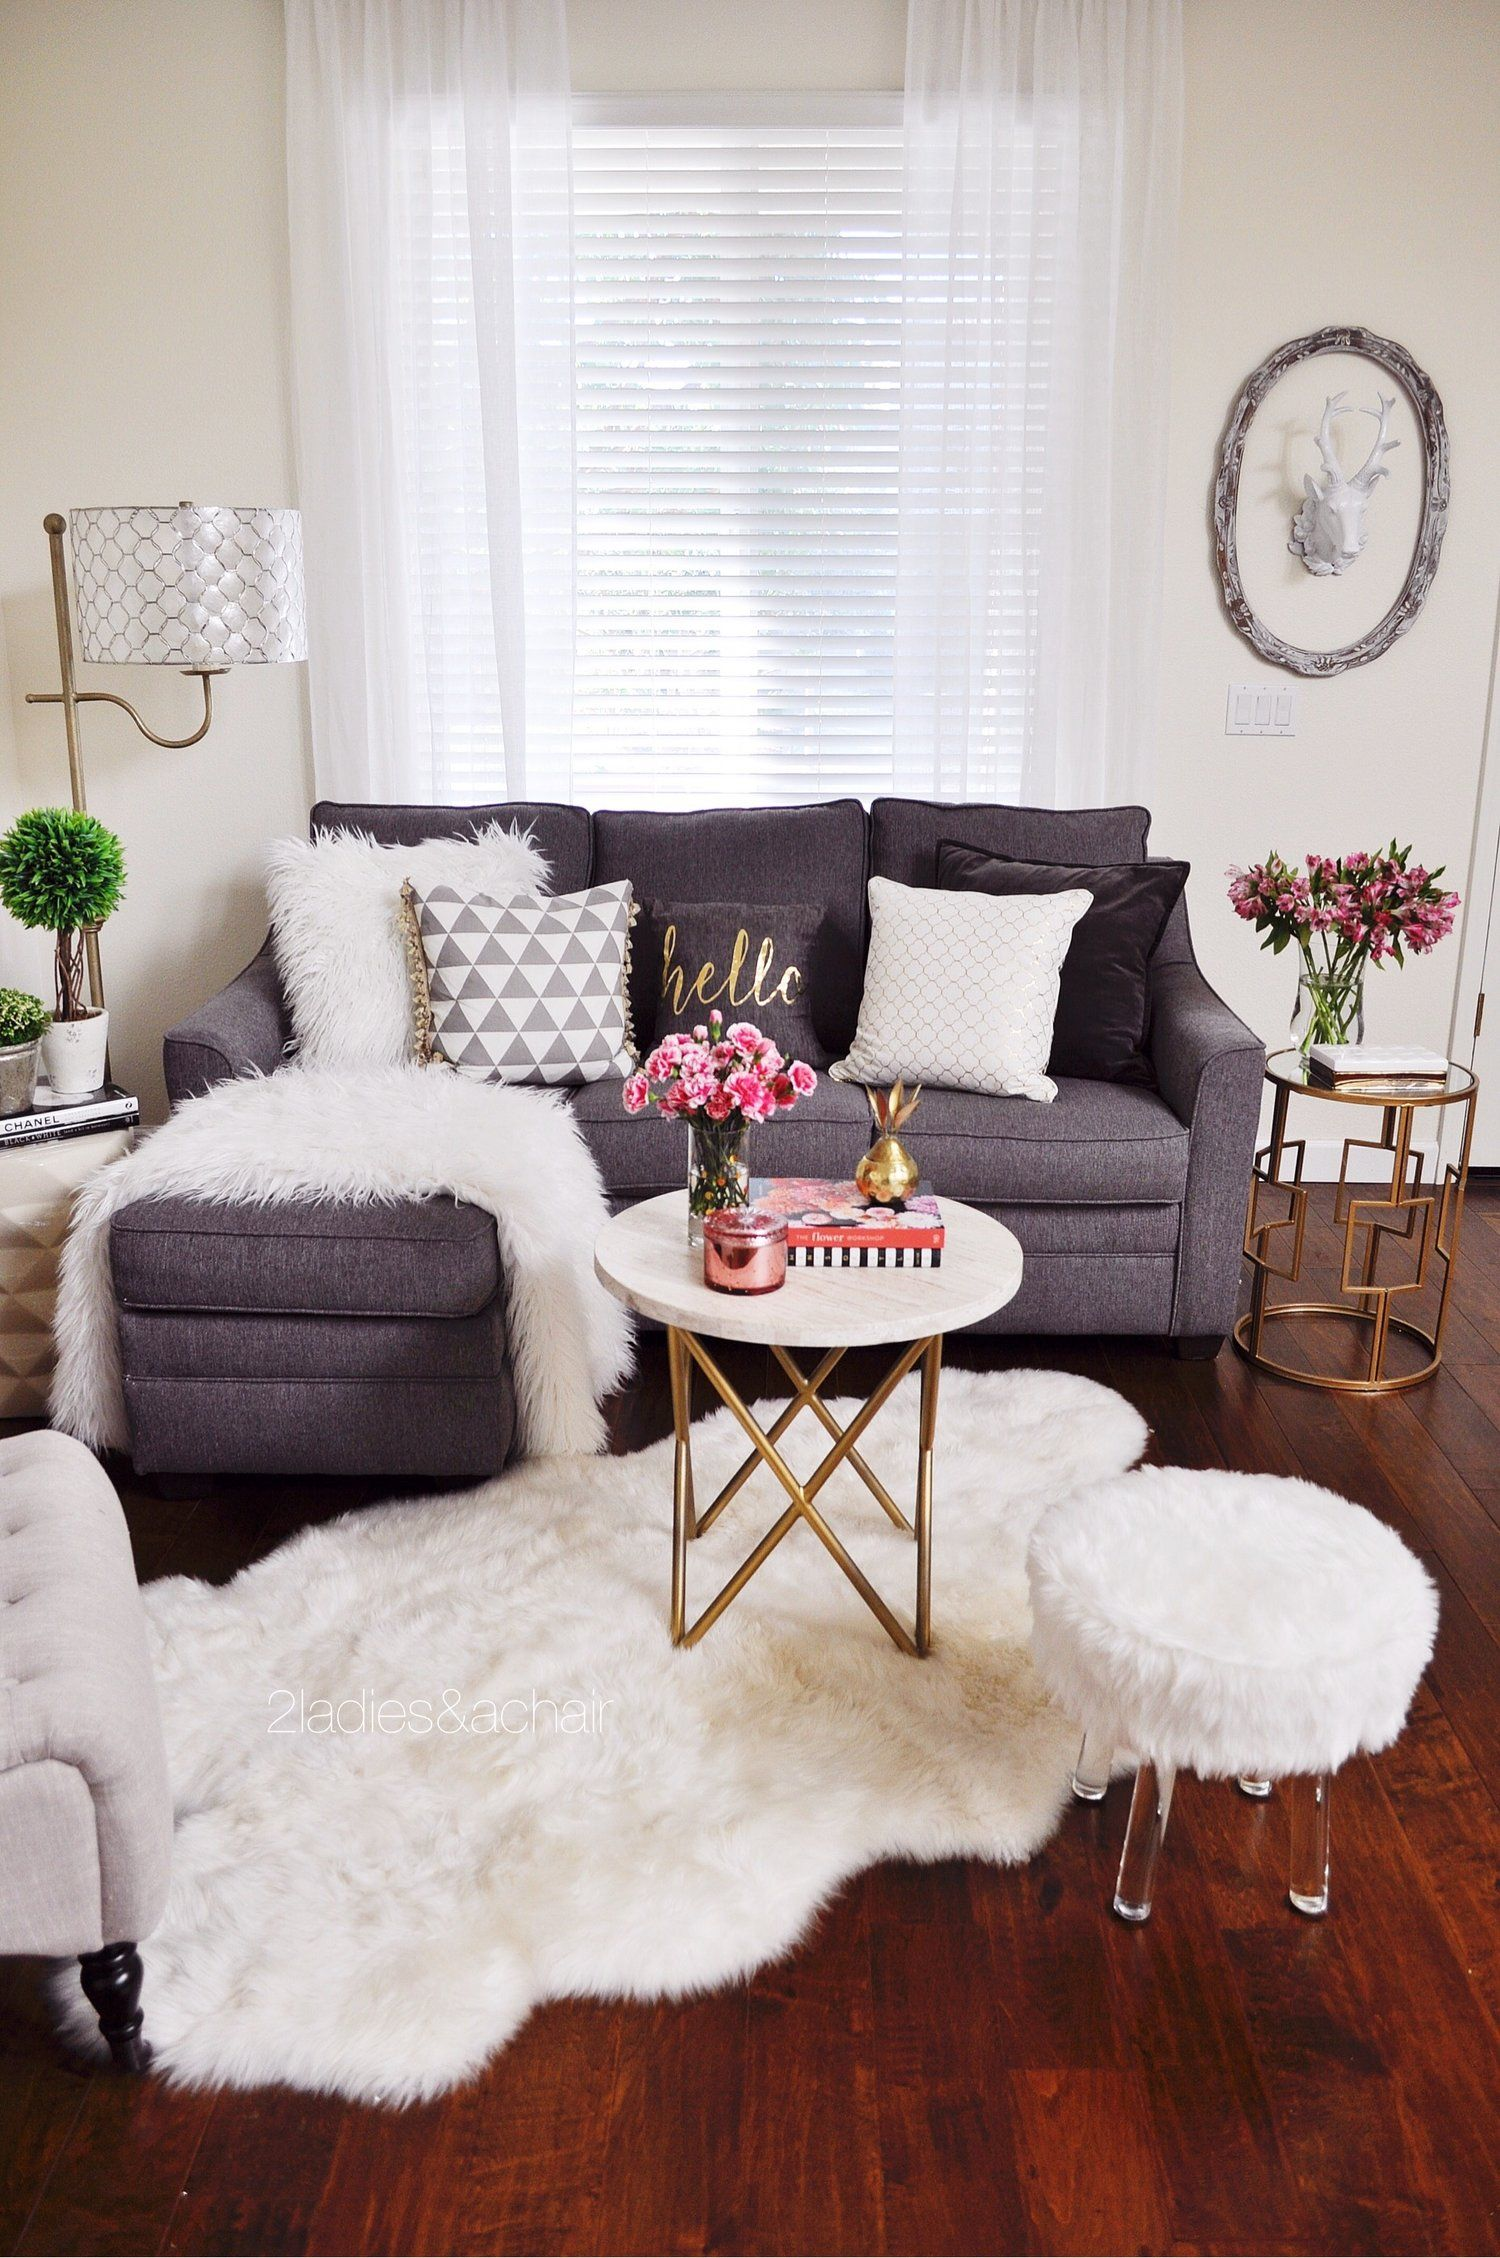 Light Bright And Cozy Decor Transitions From The Holiday Season